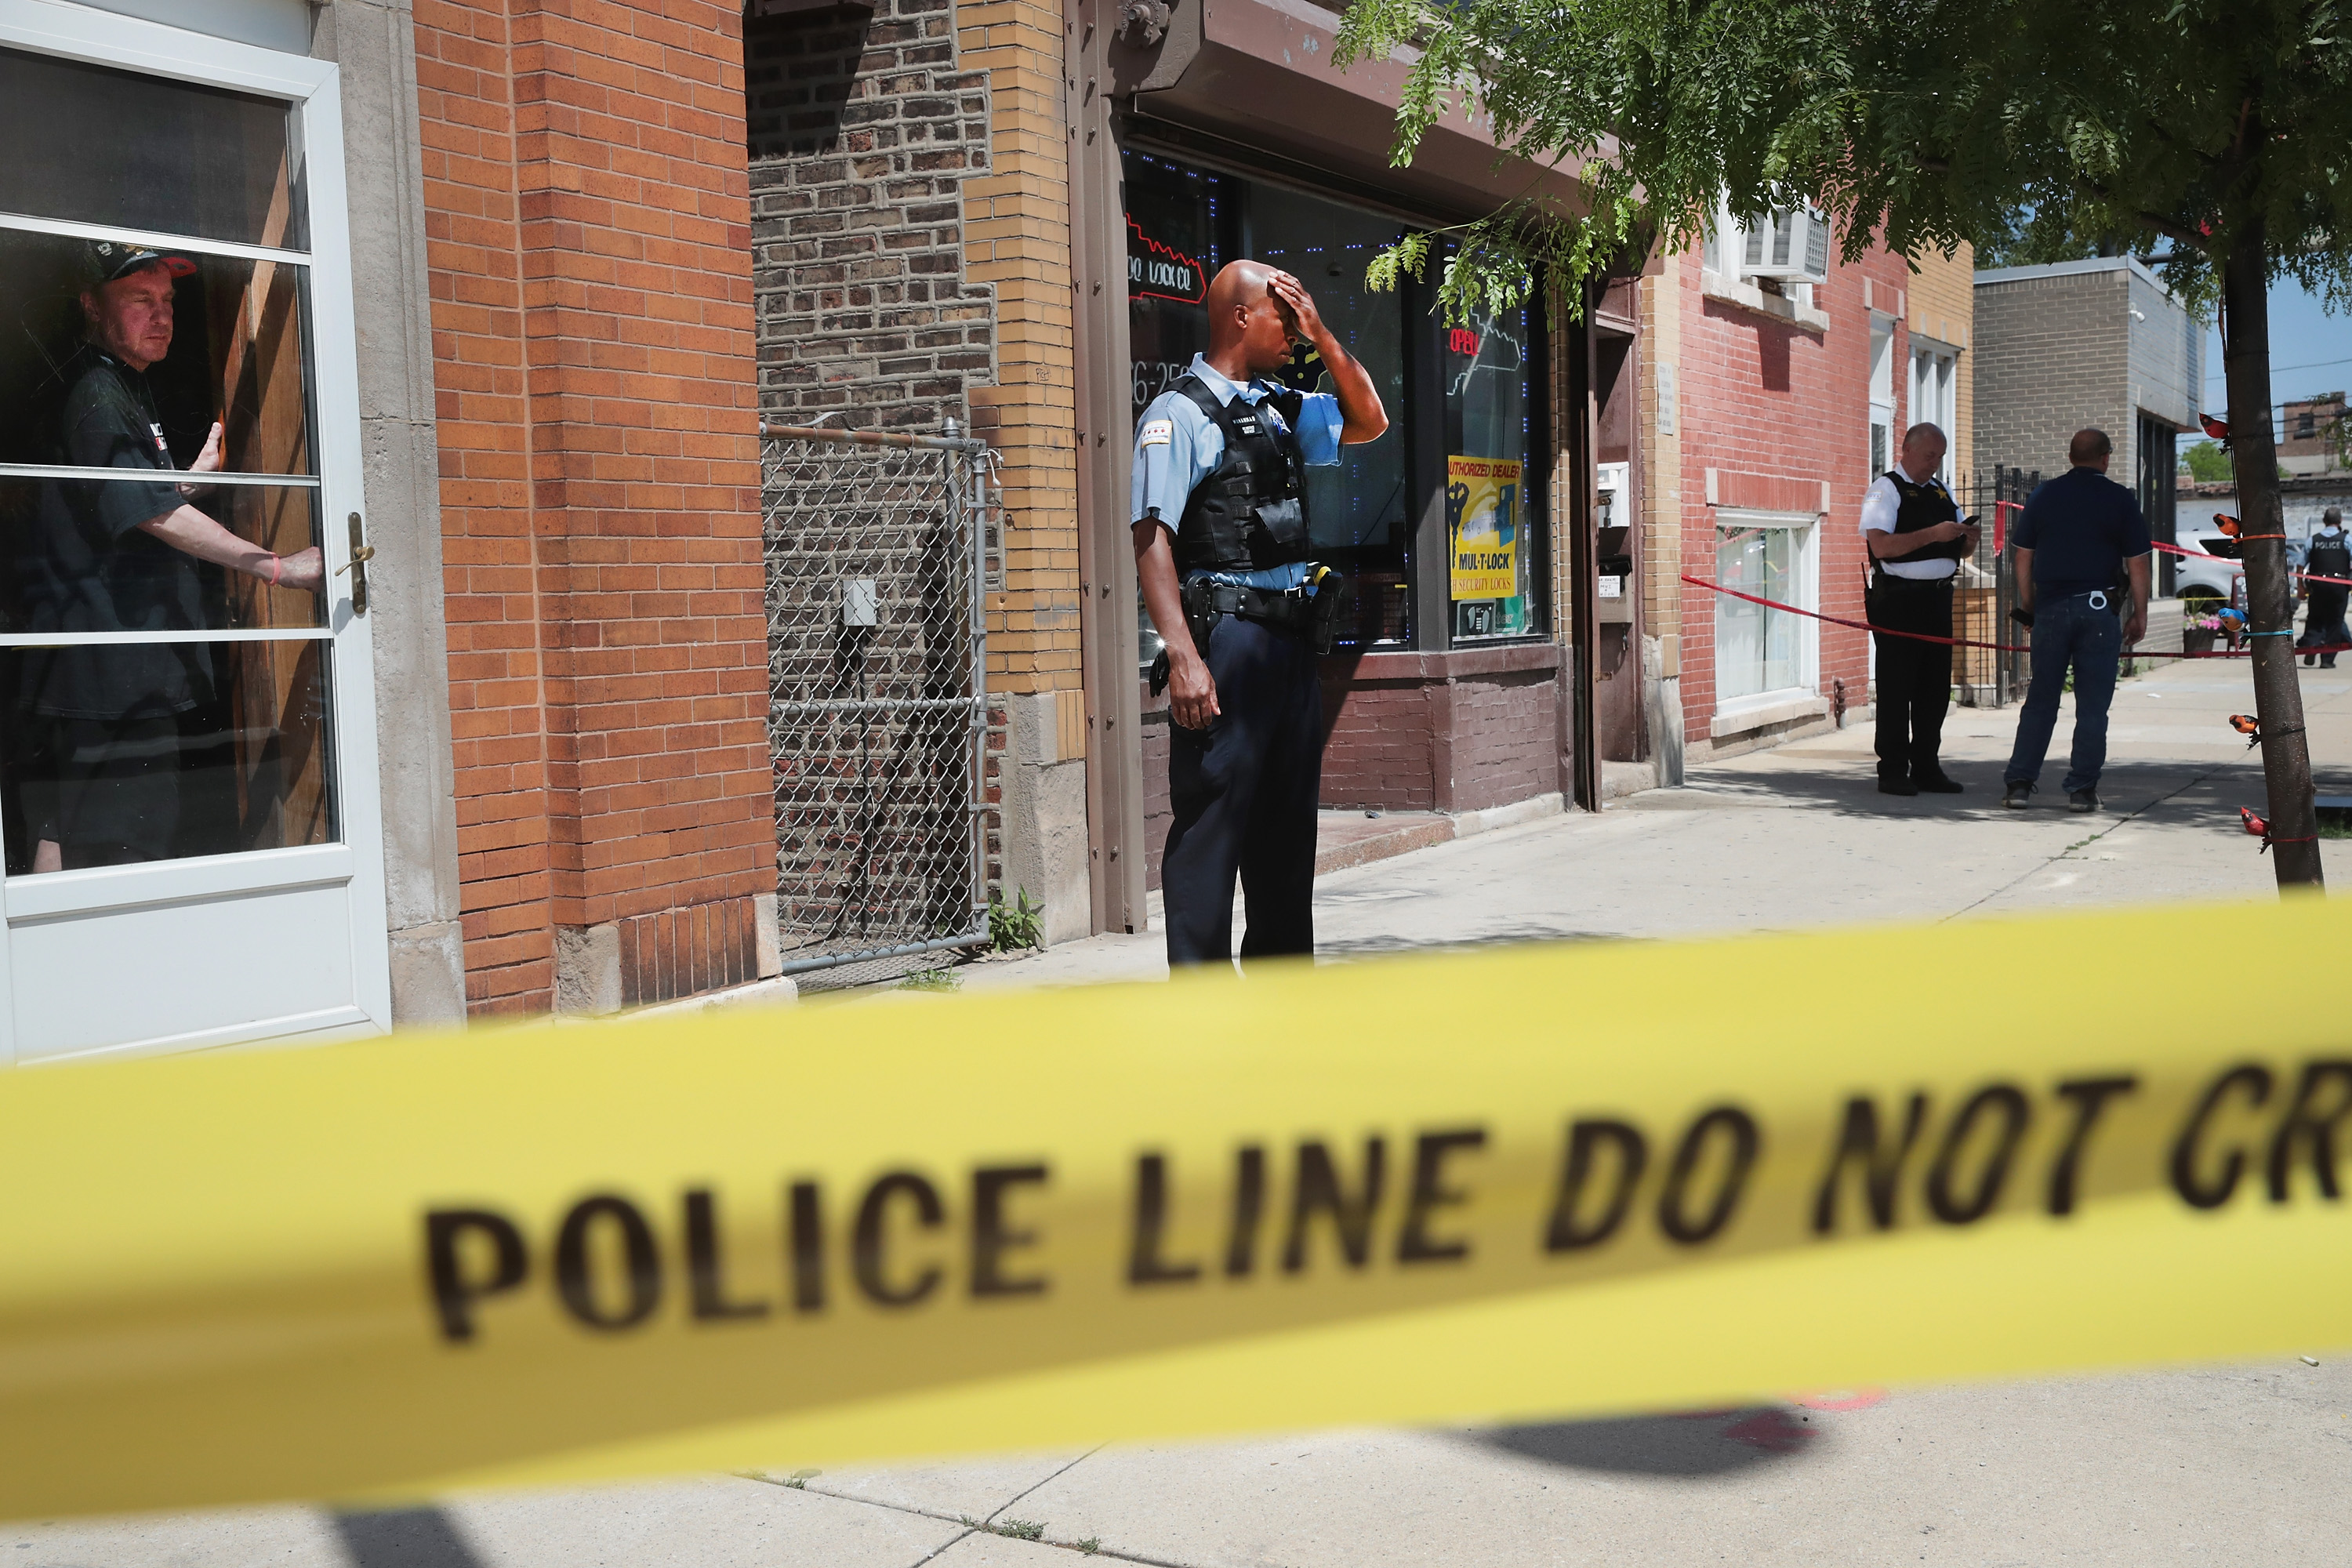 Shootings Surge Over Thanksgiving Weekend in Chicago: 68 Injured, 9 Dead